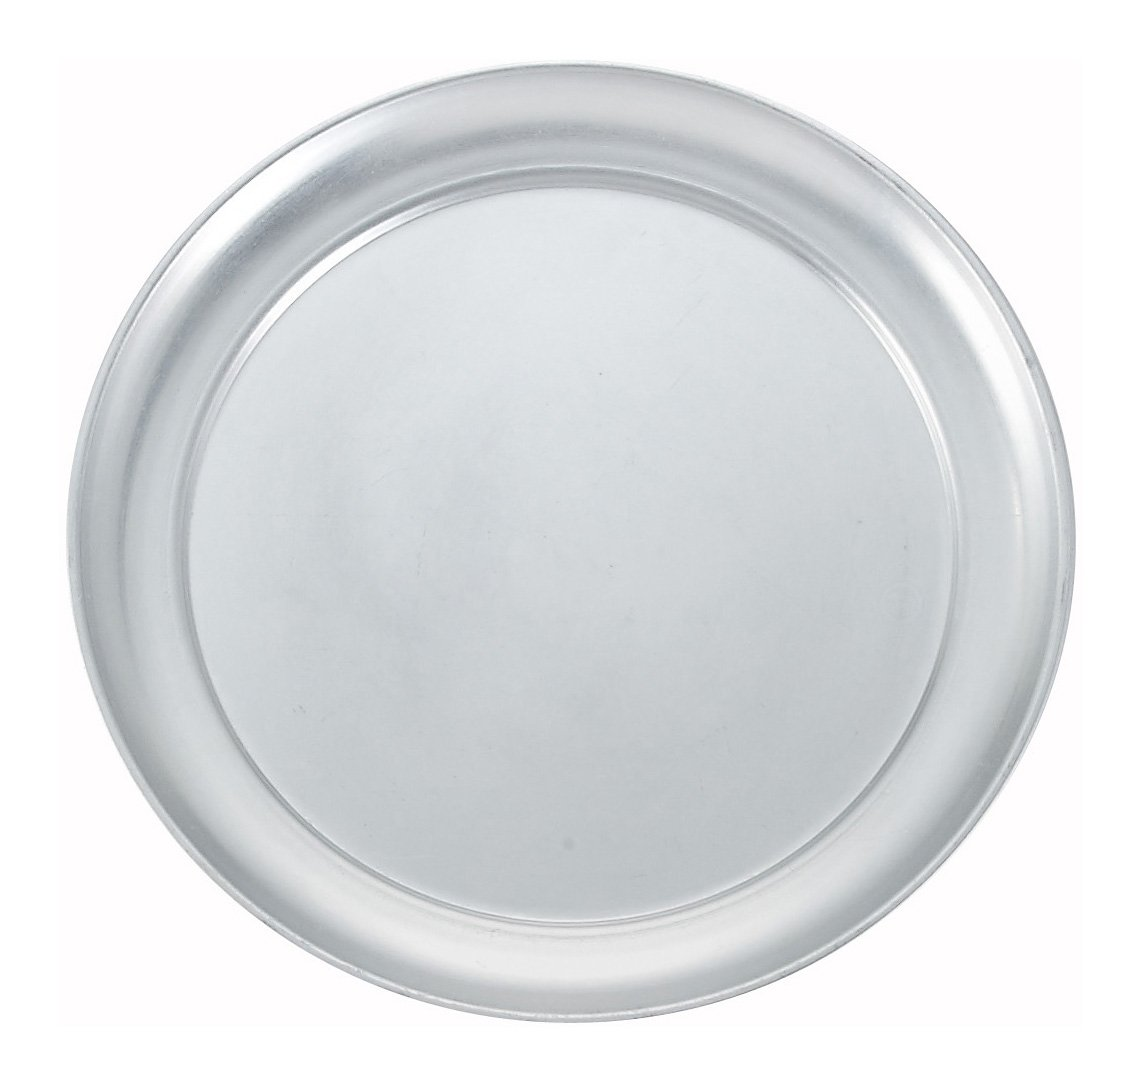 10 Wide Rim Pizza Tray, Alu